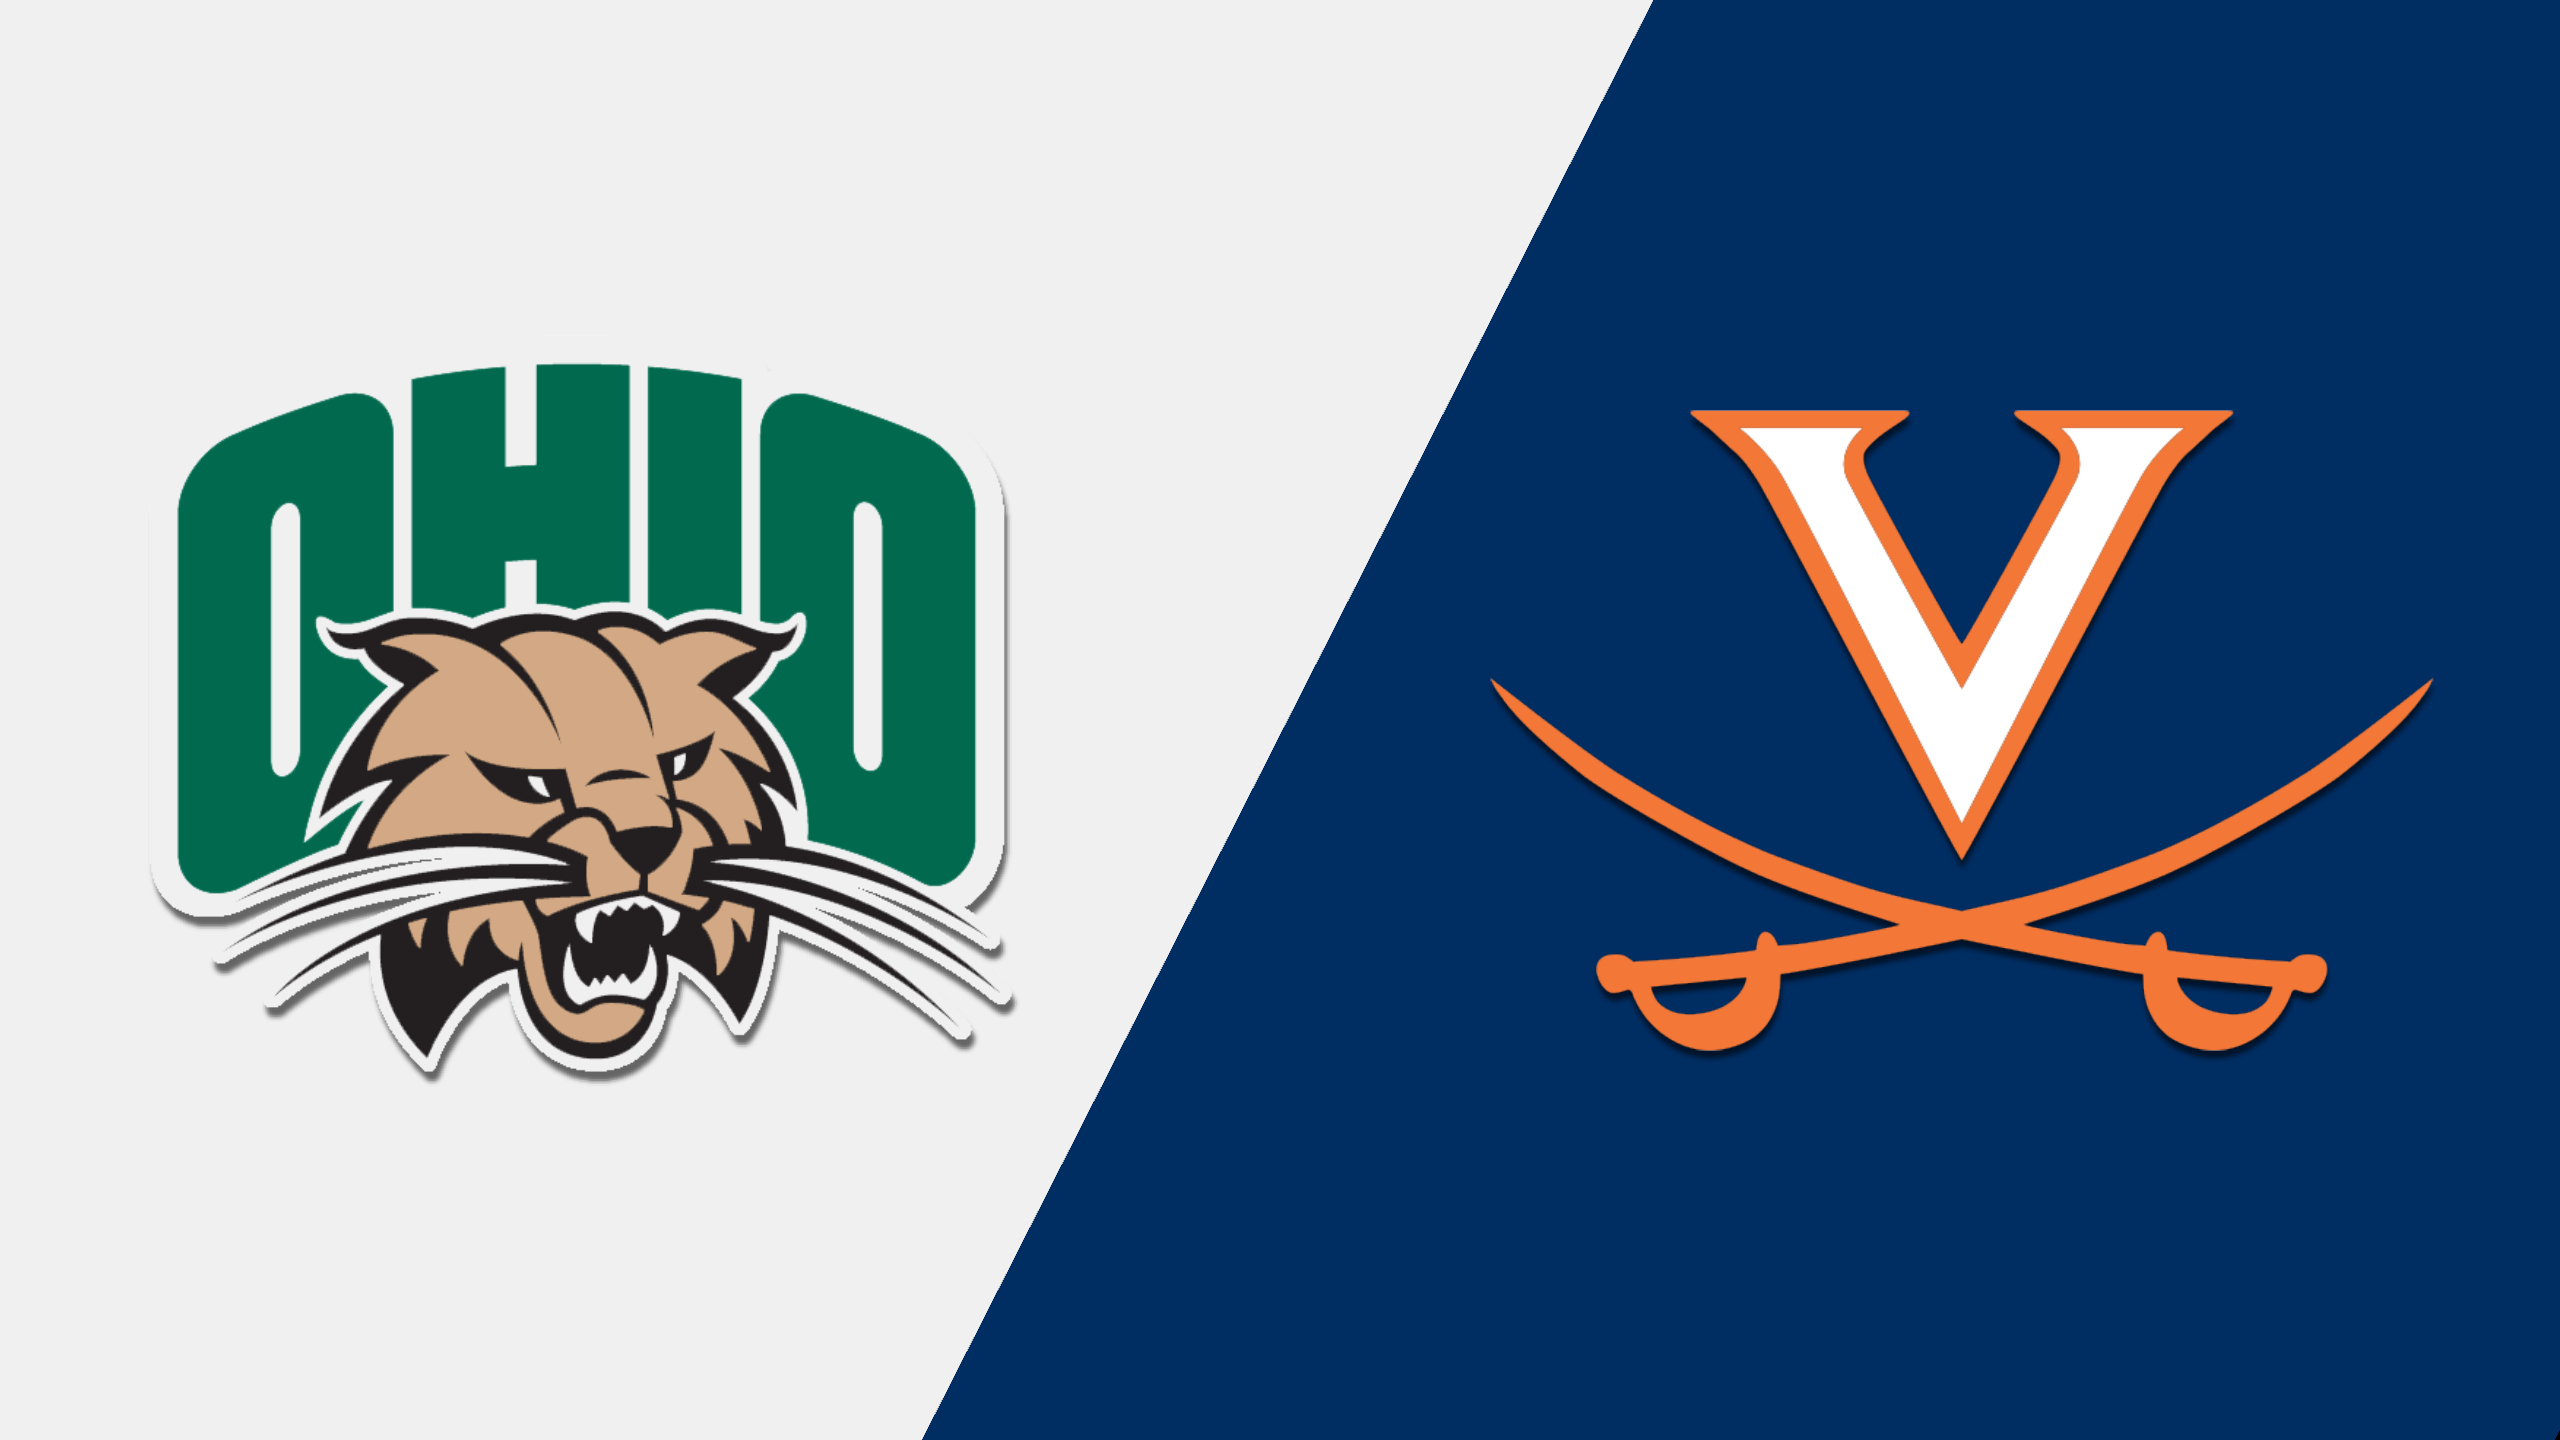 Ohio vs. Virginia (Football) (re-air)